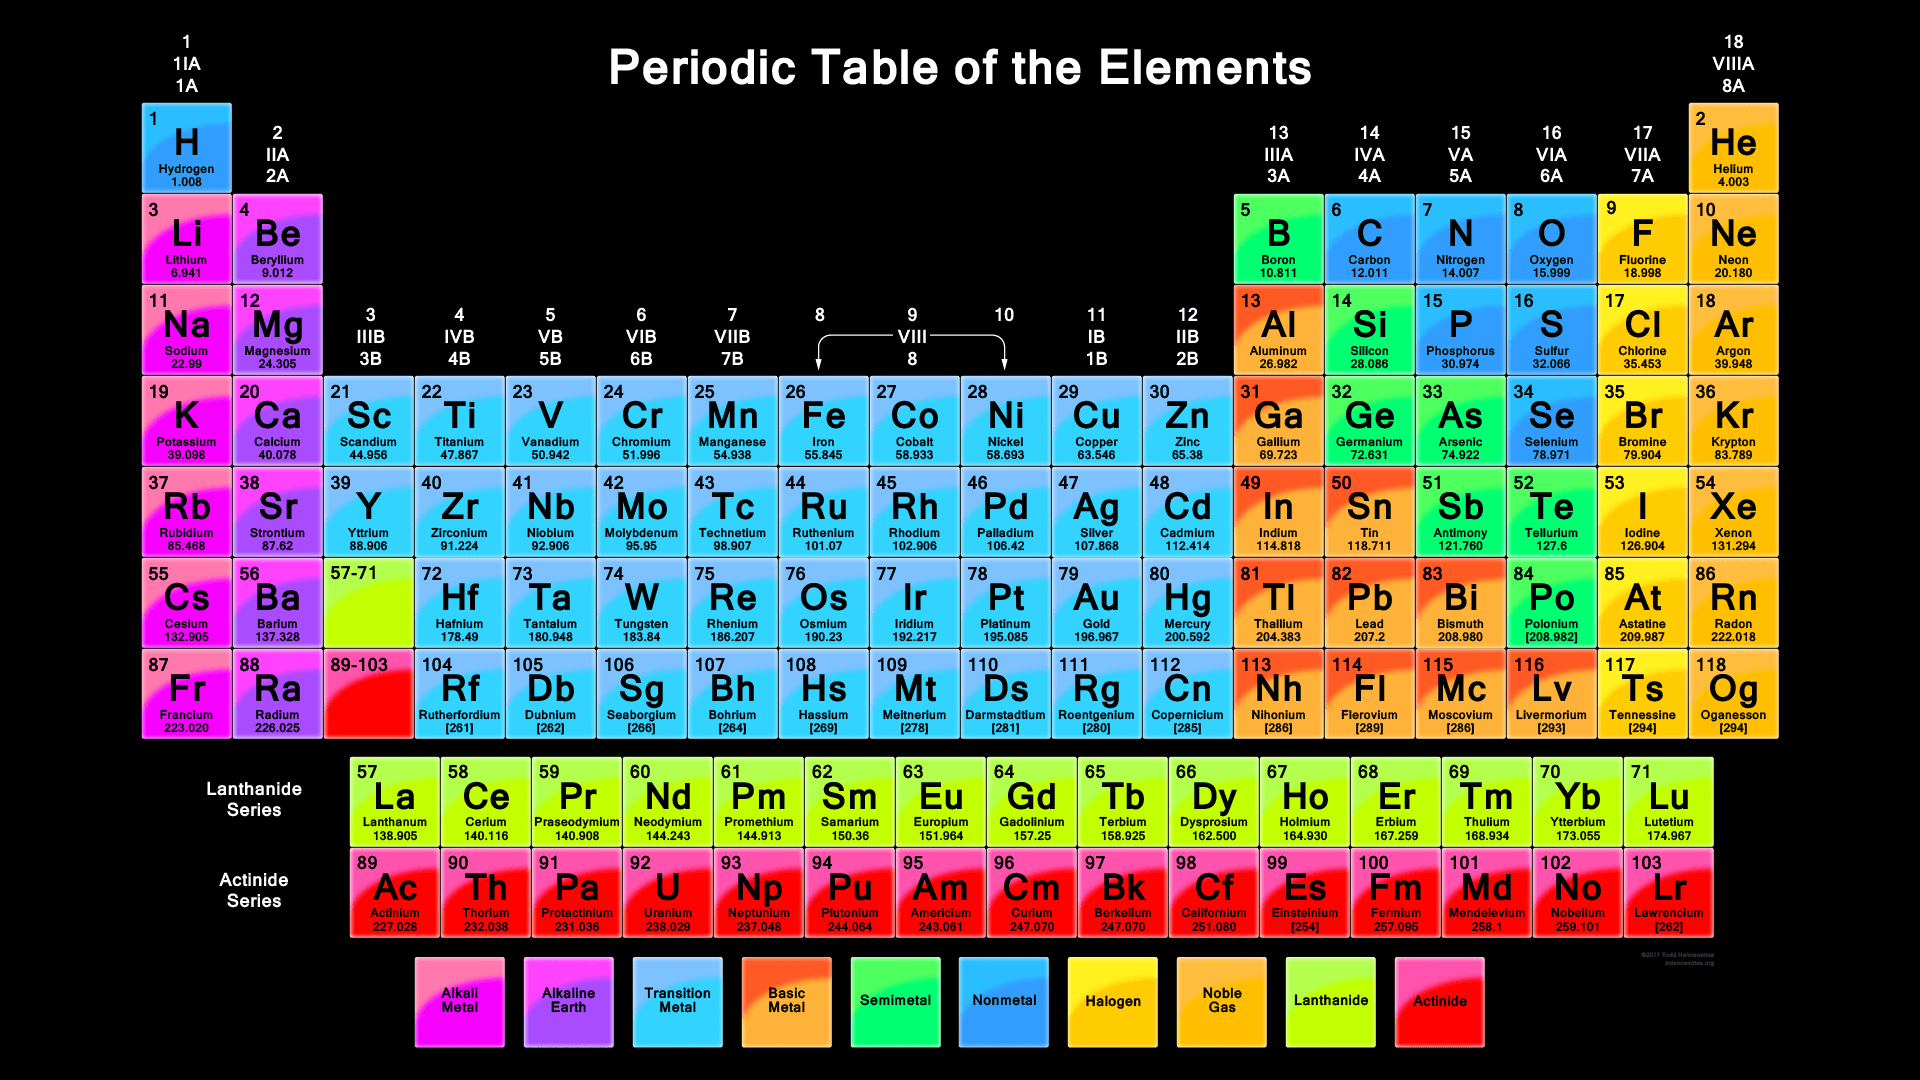 Hd wallpaper of periodic table vibrant color periodic table hd wallpaper of periodic table wallpaper with black background gamestrikefo Image collections